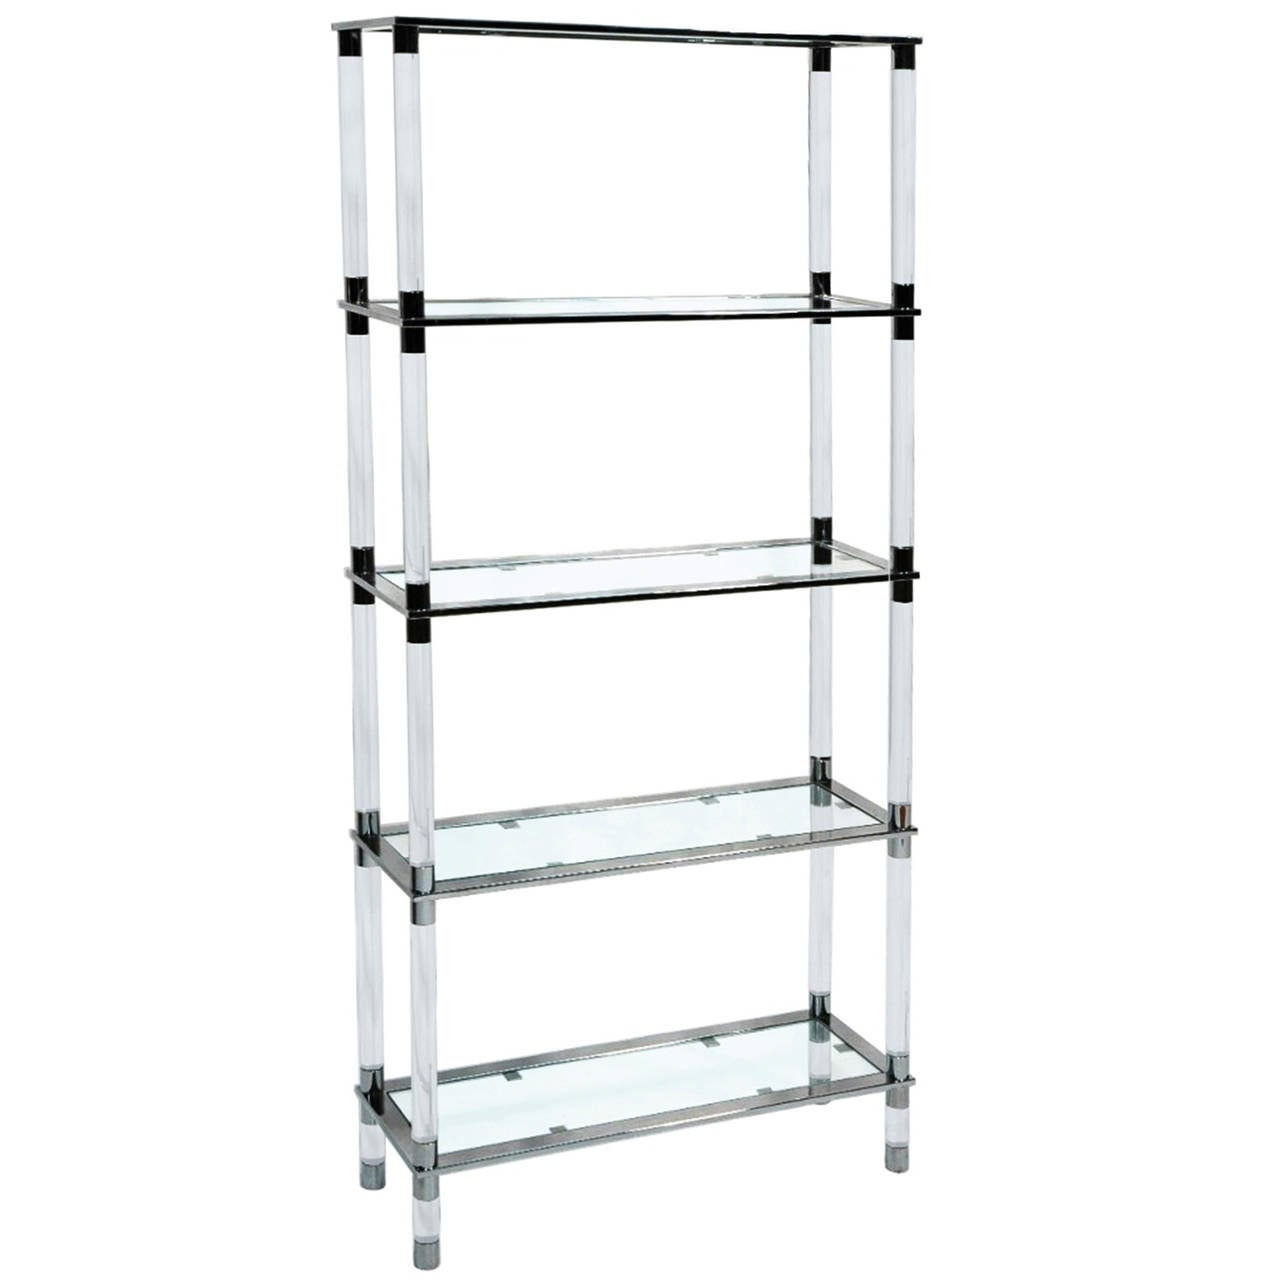 lucite and stainless steel etagere designed and manufactured by cain modern for sale at 1stdibs. Black Bedroom Furniture Sets. Home Design Ideas